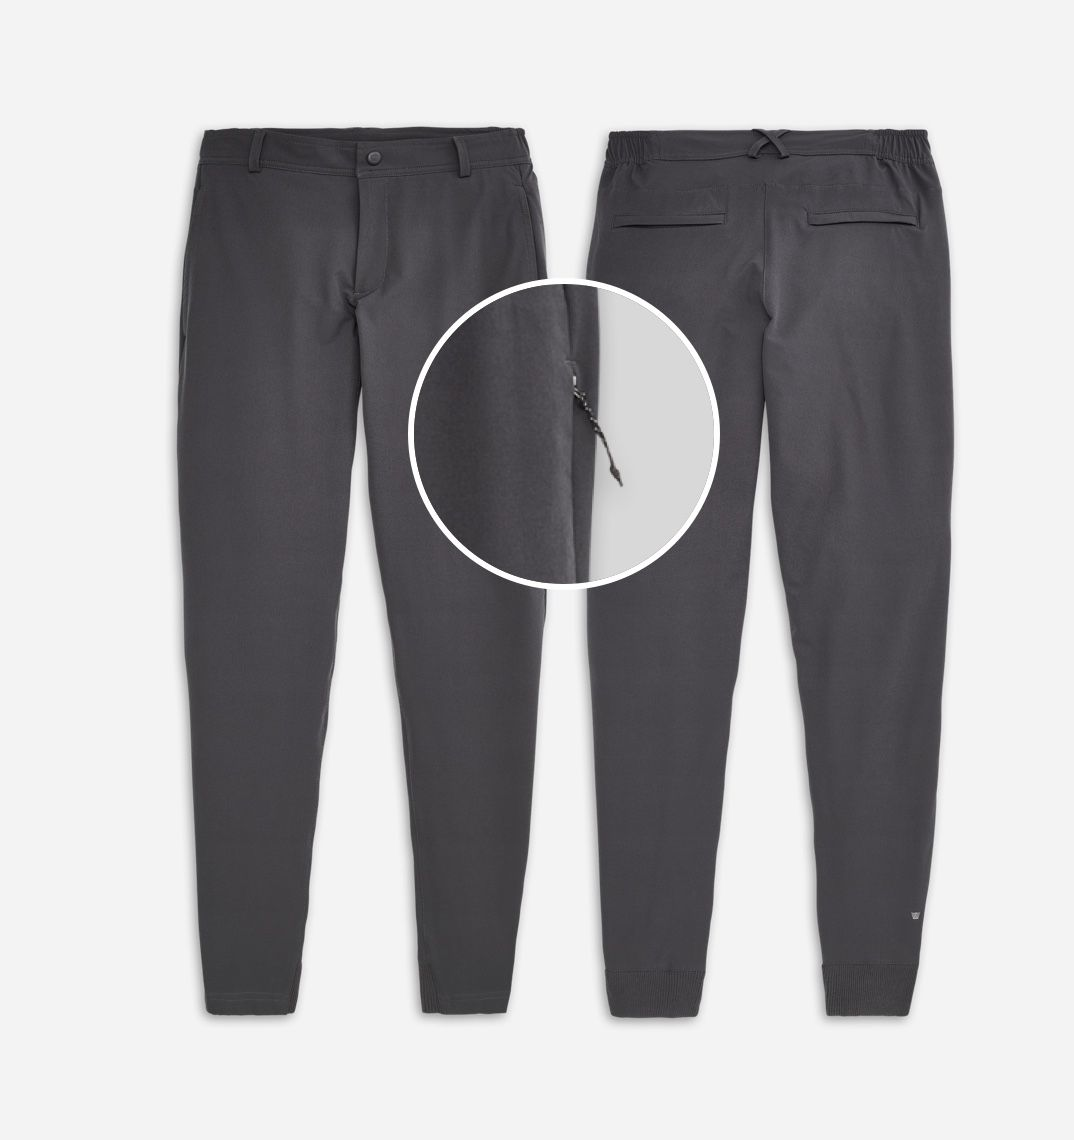 34f9fd09a0 Mack Weldon | Men's Radius Pant - Highly technical, for outdoors and travel.